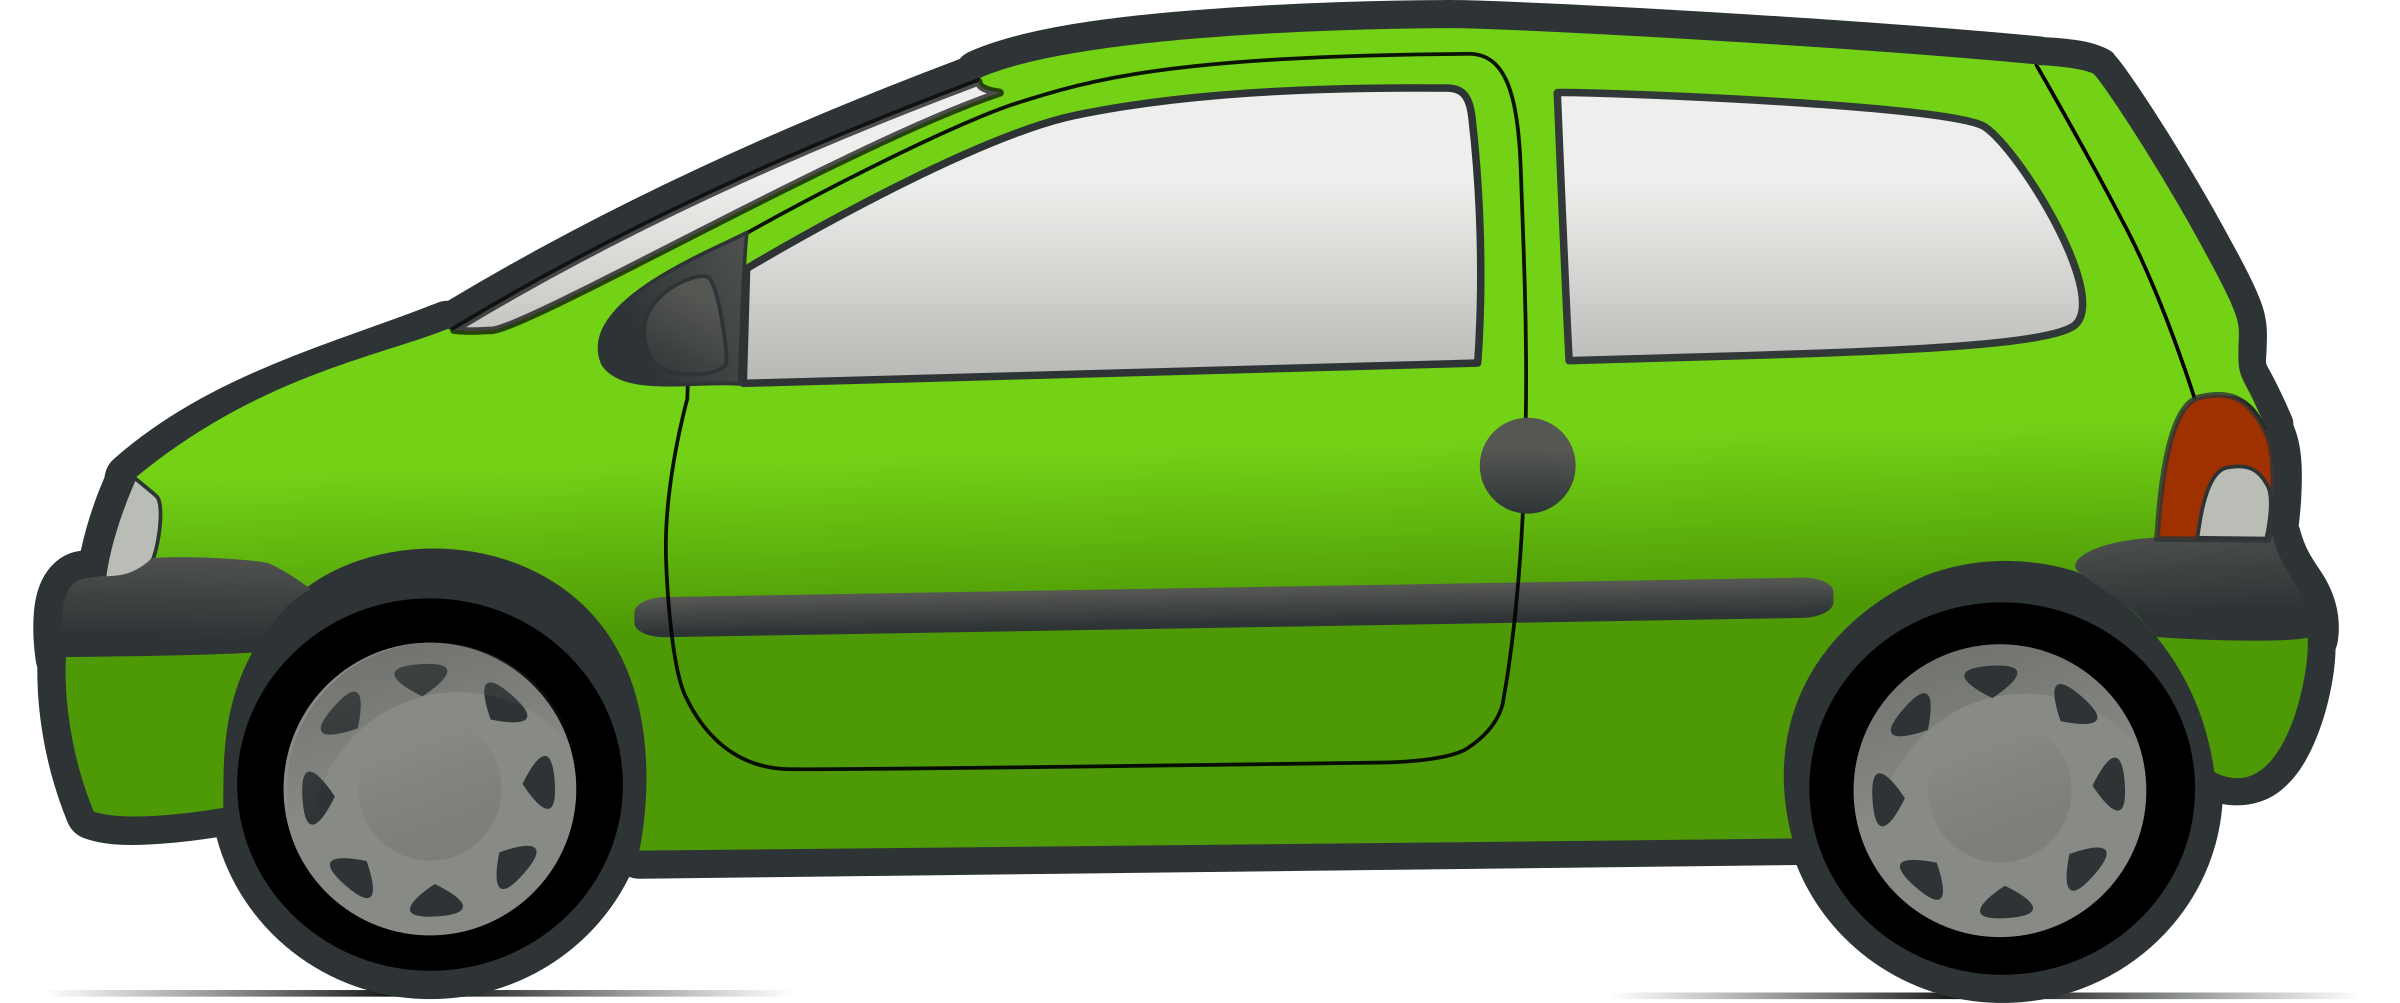 red and green renault twingo 3 by molumen